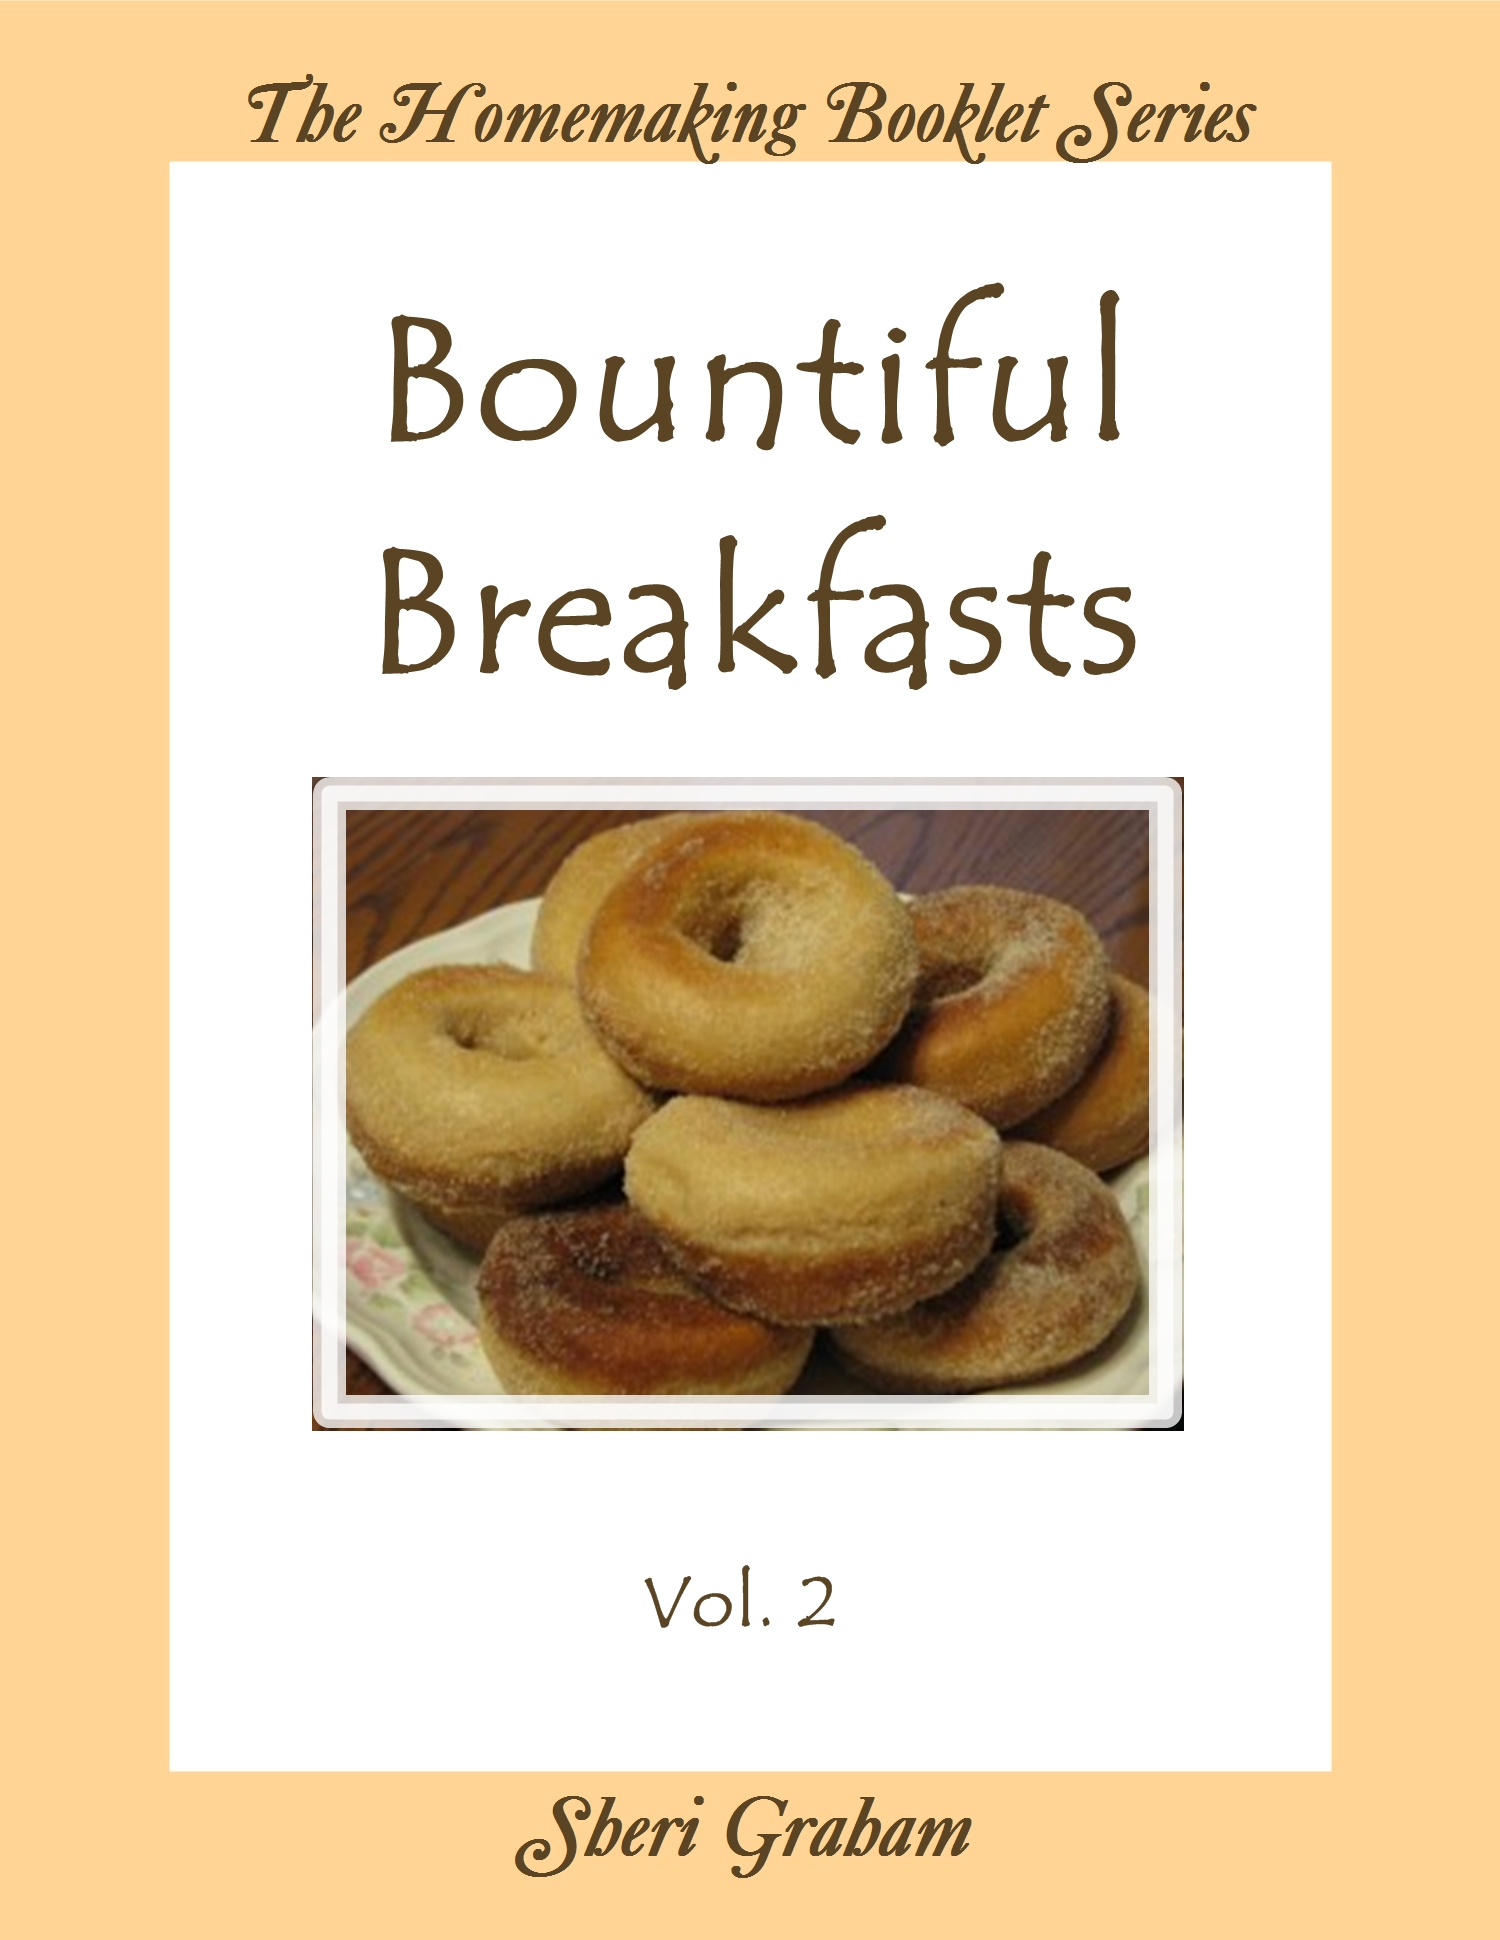 Bountiful Breakfasts - Vol. 2